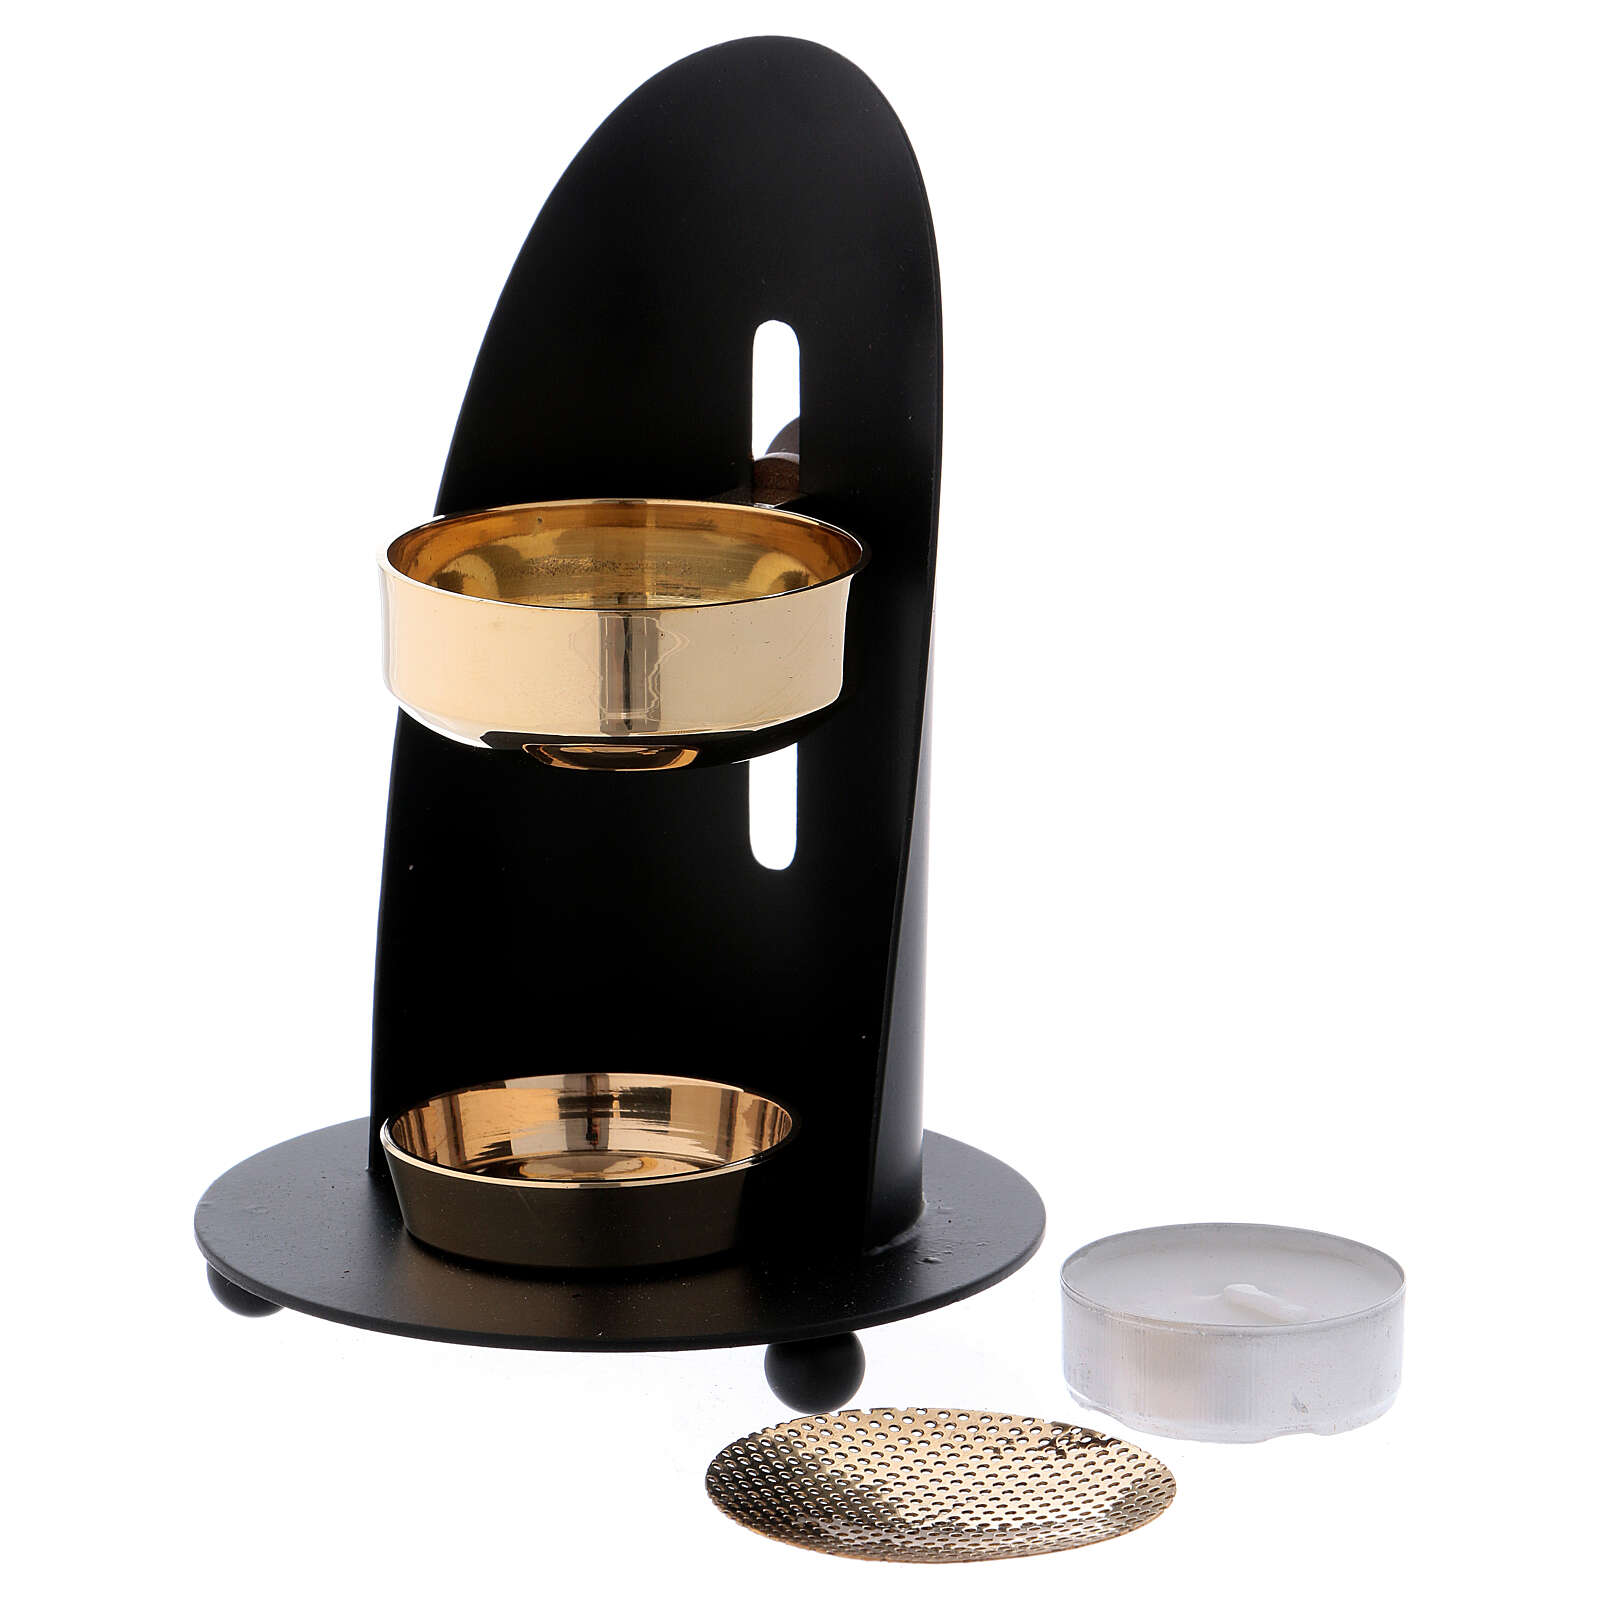 Incense burner in black brass with wood handle 4 3/4 in 3